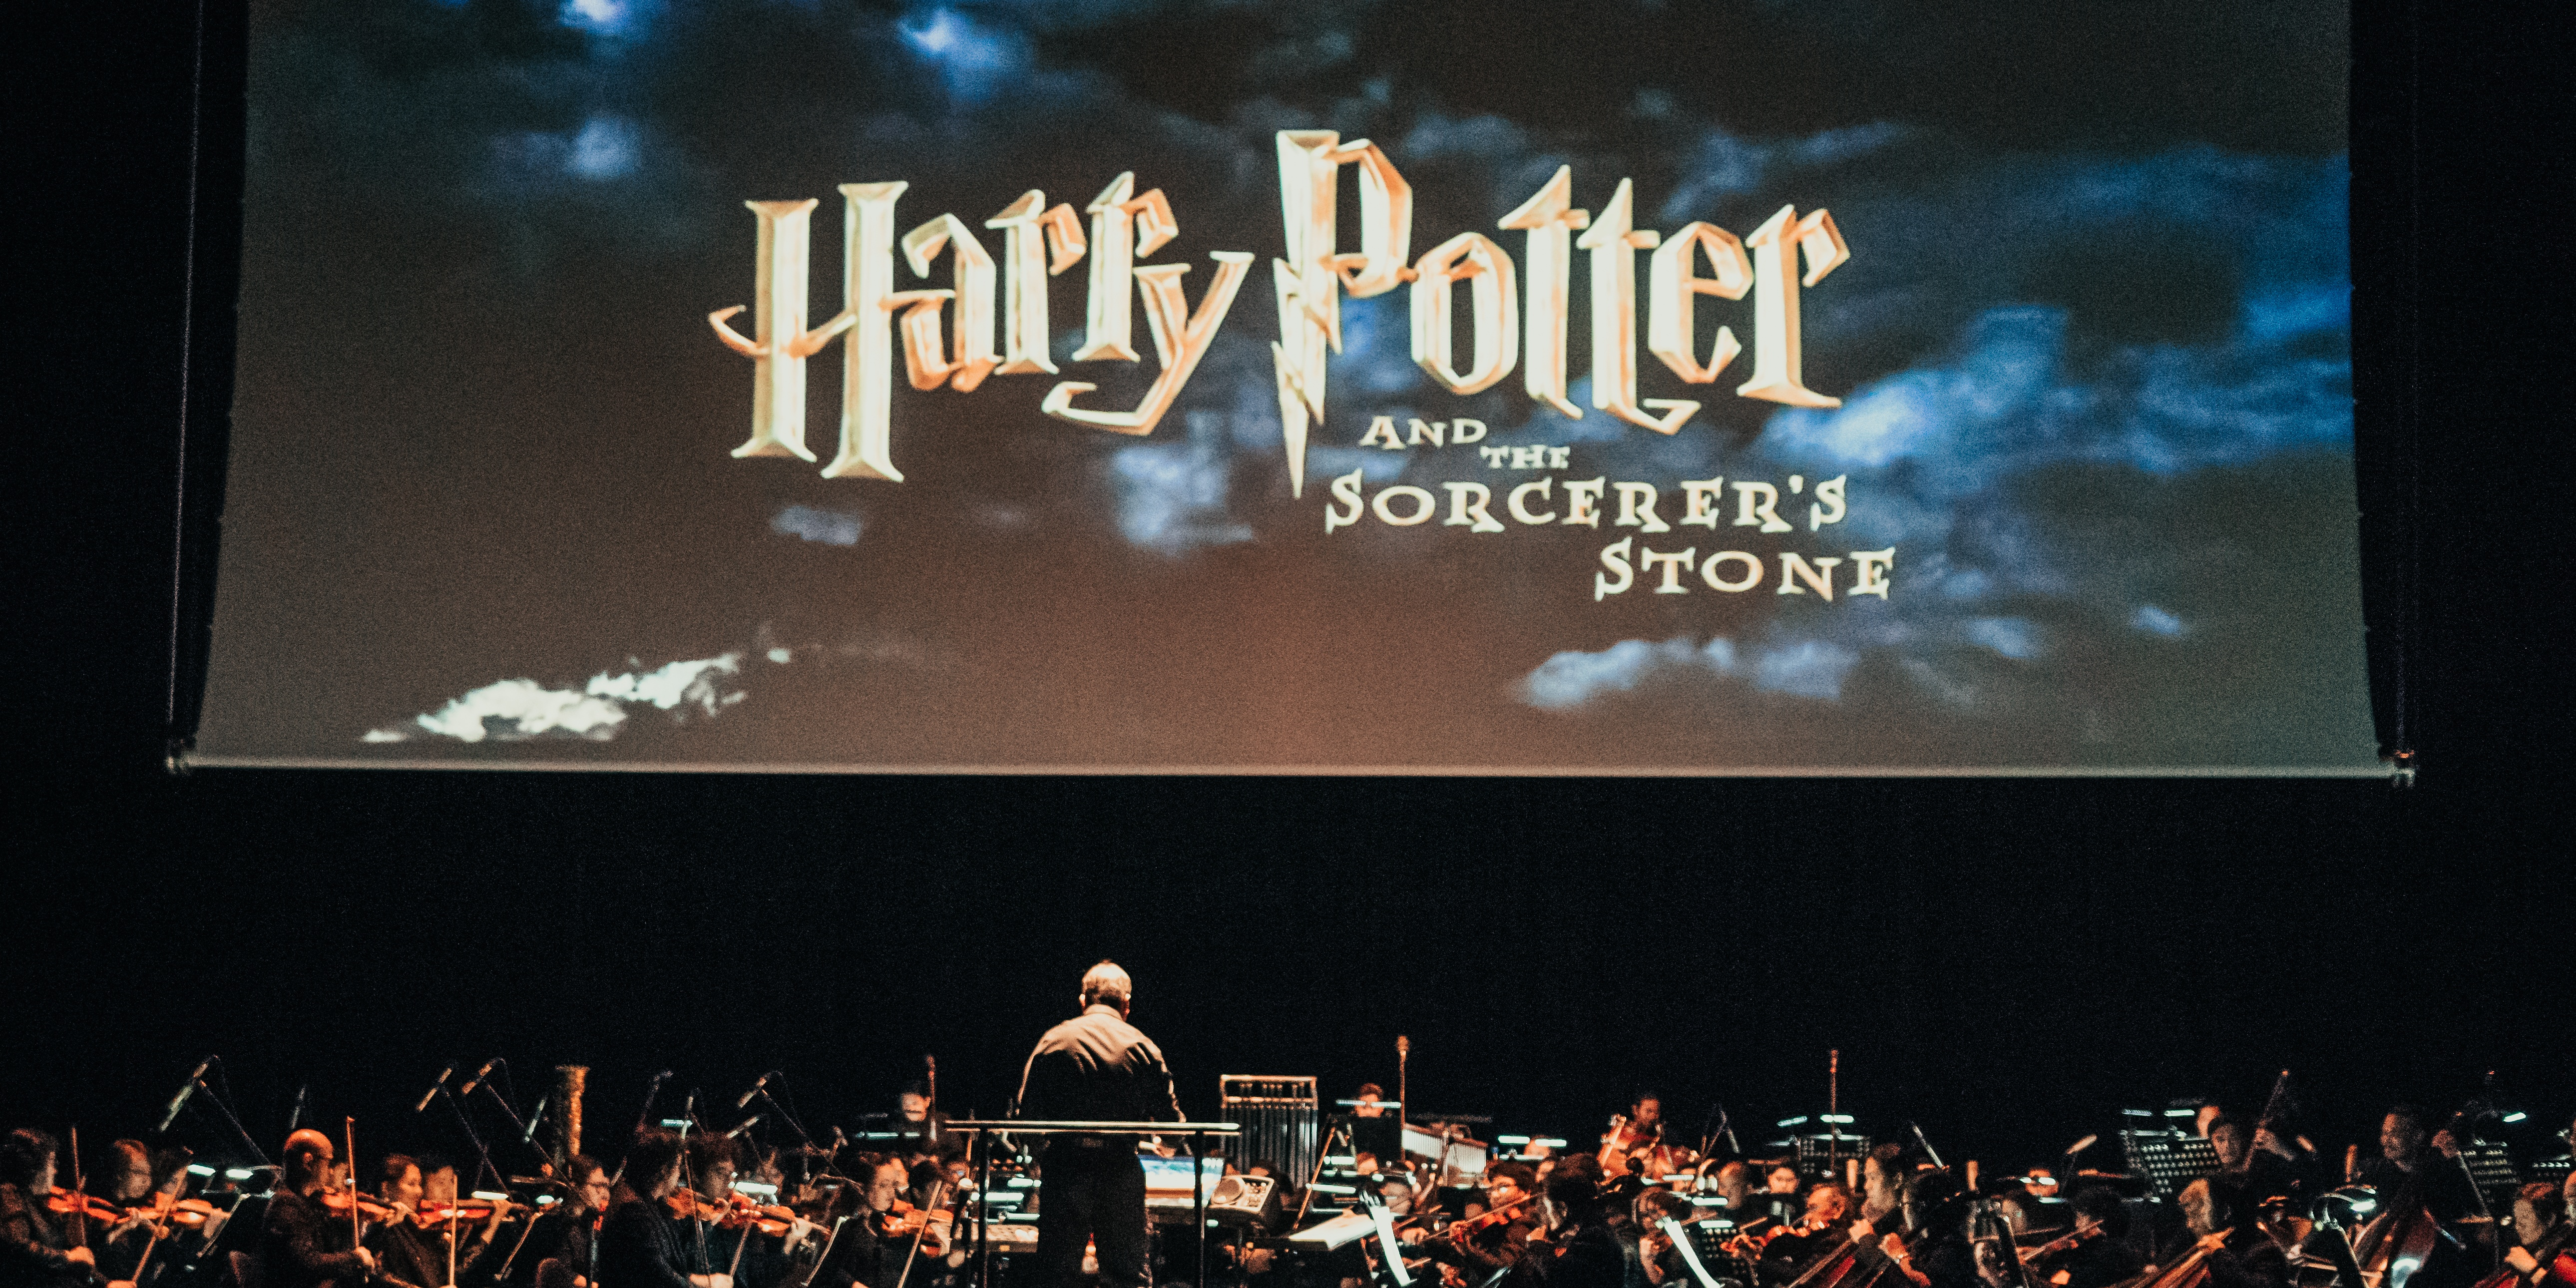 Harry Potter in Concert couldn't have come to Manila at a better time – gig report